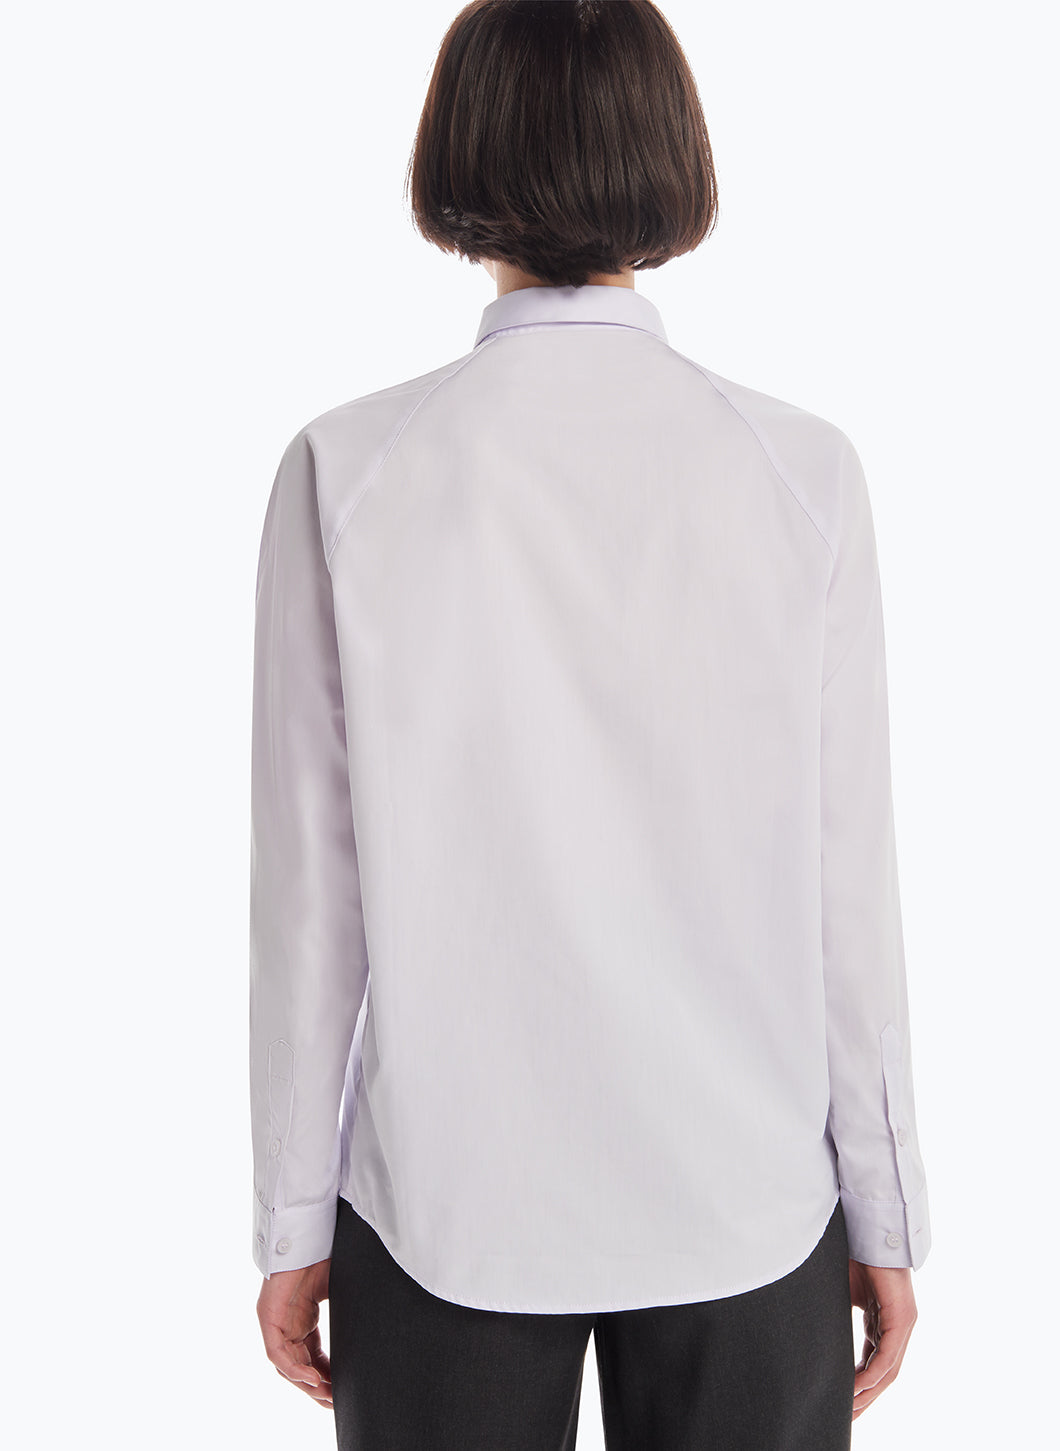 Raglan Sleeve Shirt in Parma Poplin